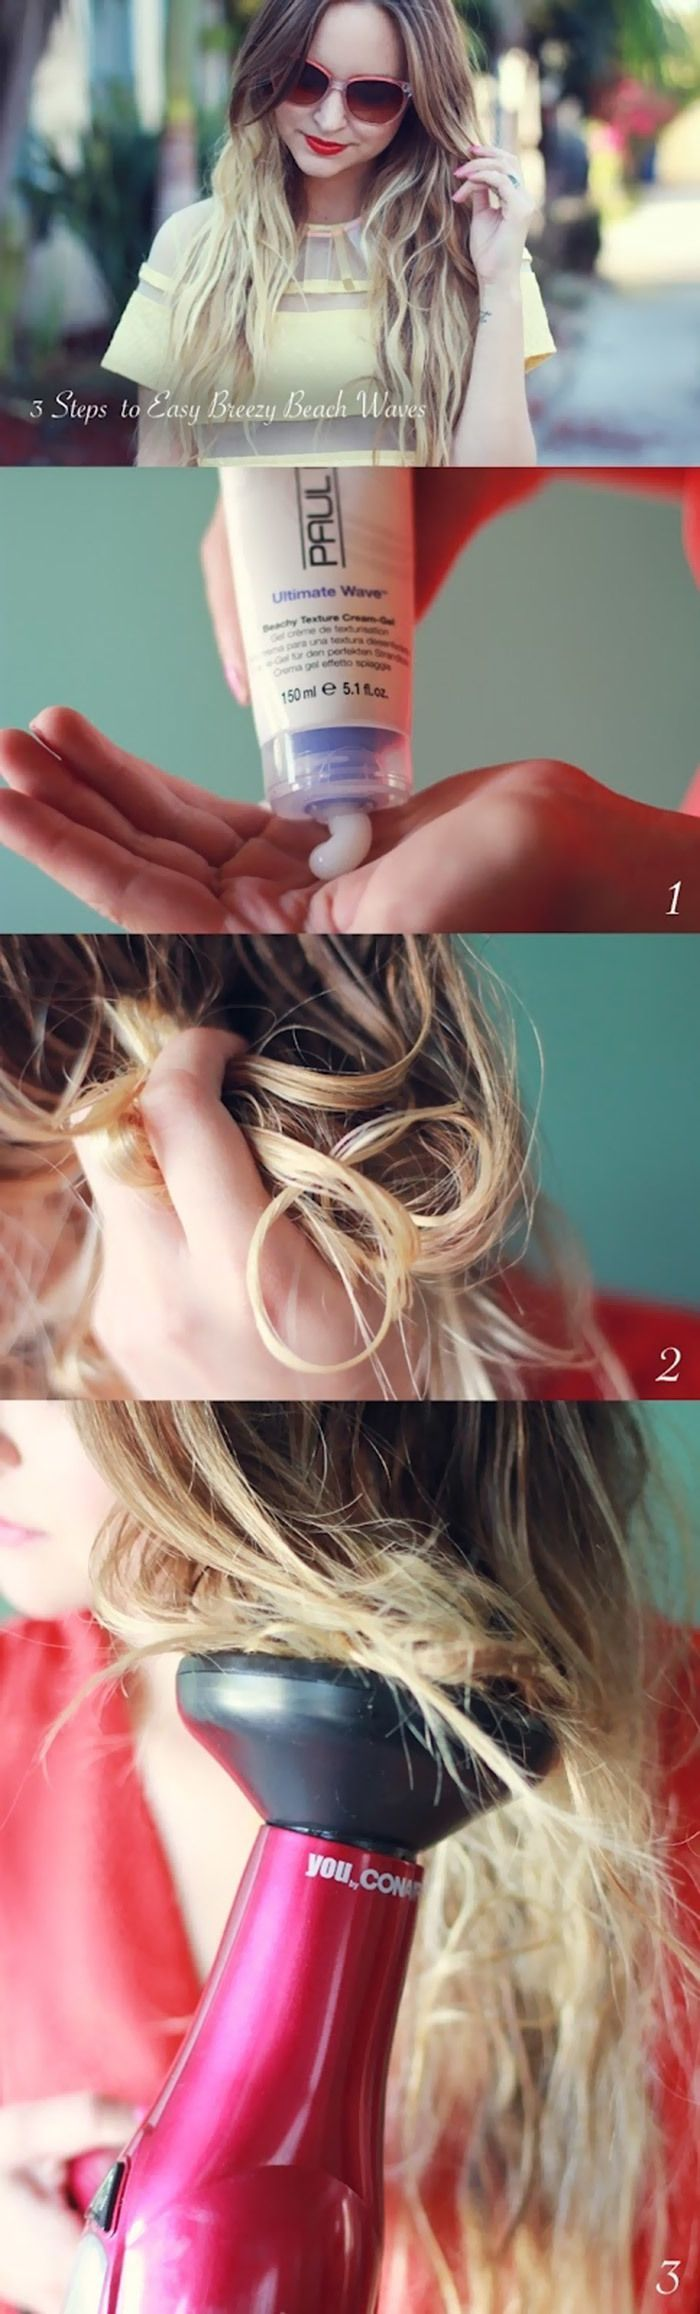 25 Hairstyling Hacks Every Girl Should Know Hair Styles Hair Beauty